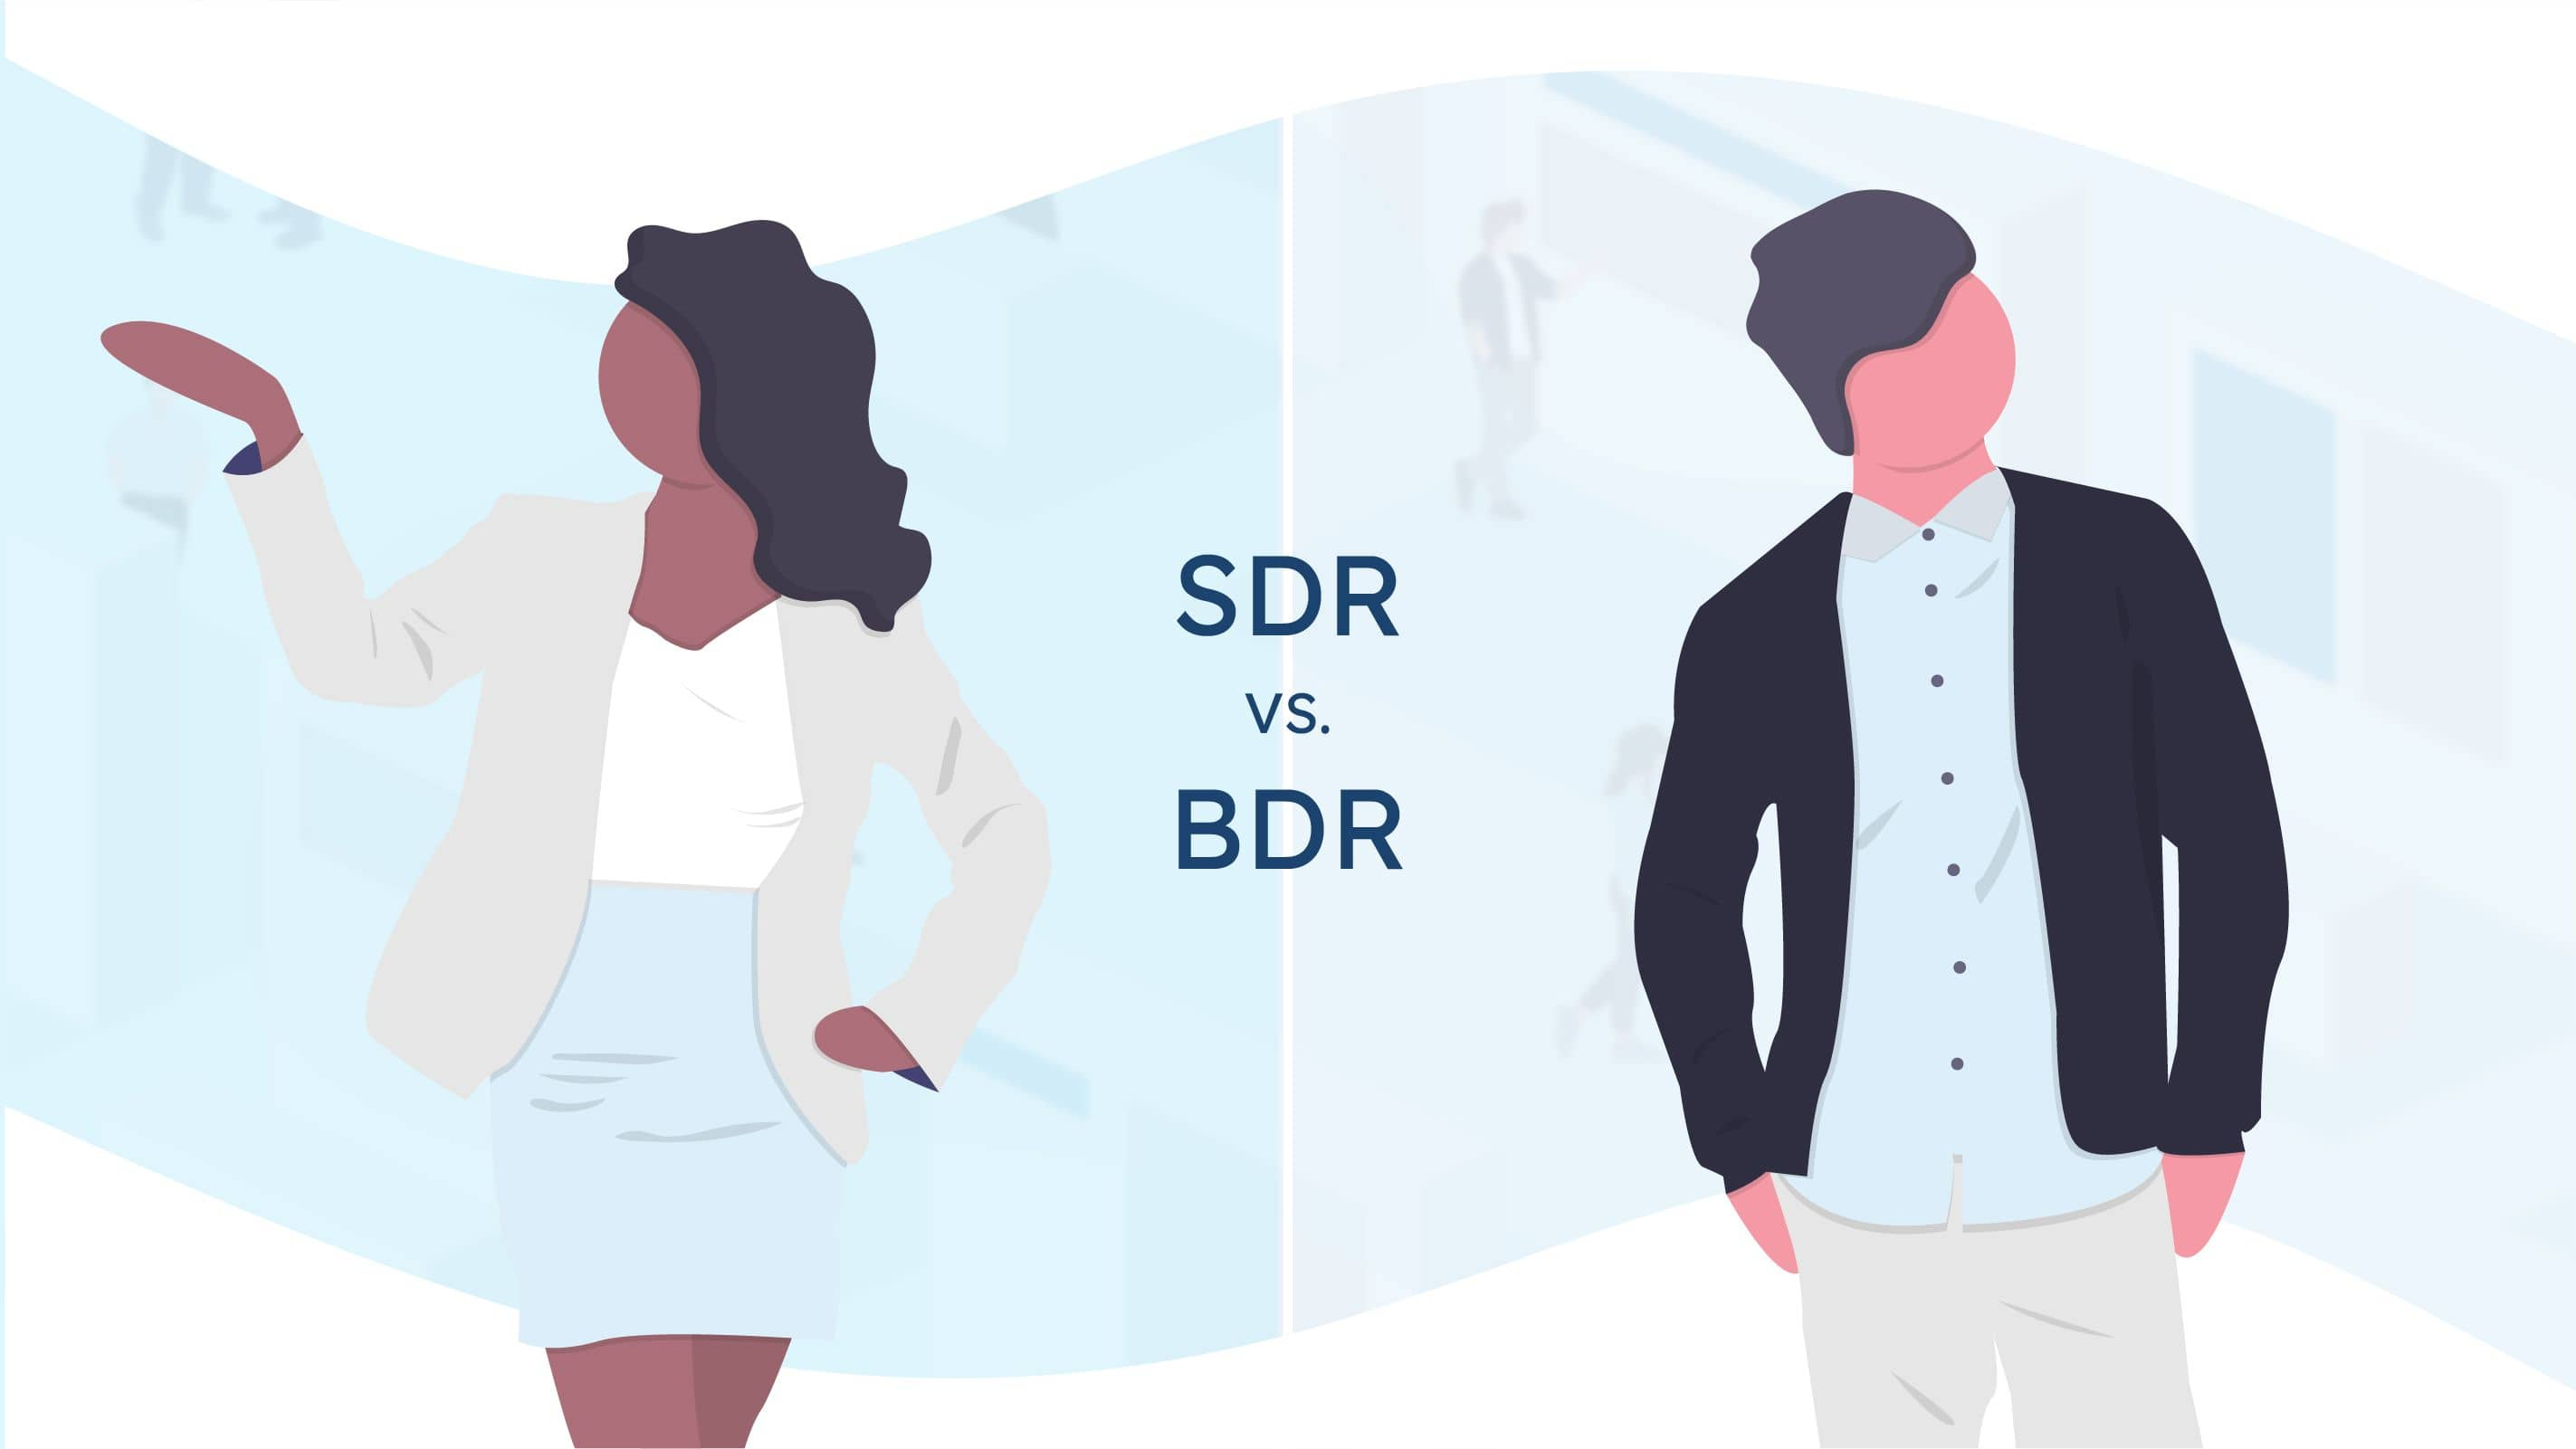 SDR vs BDR - What's what?